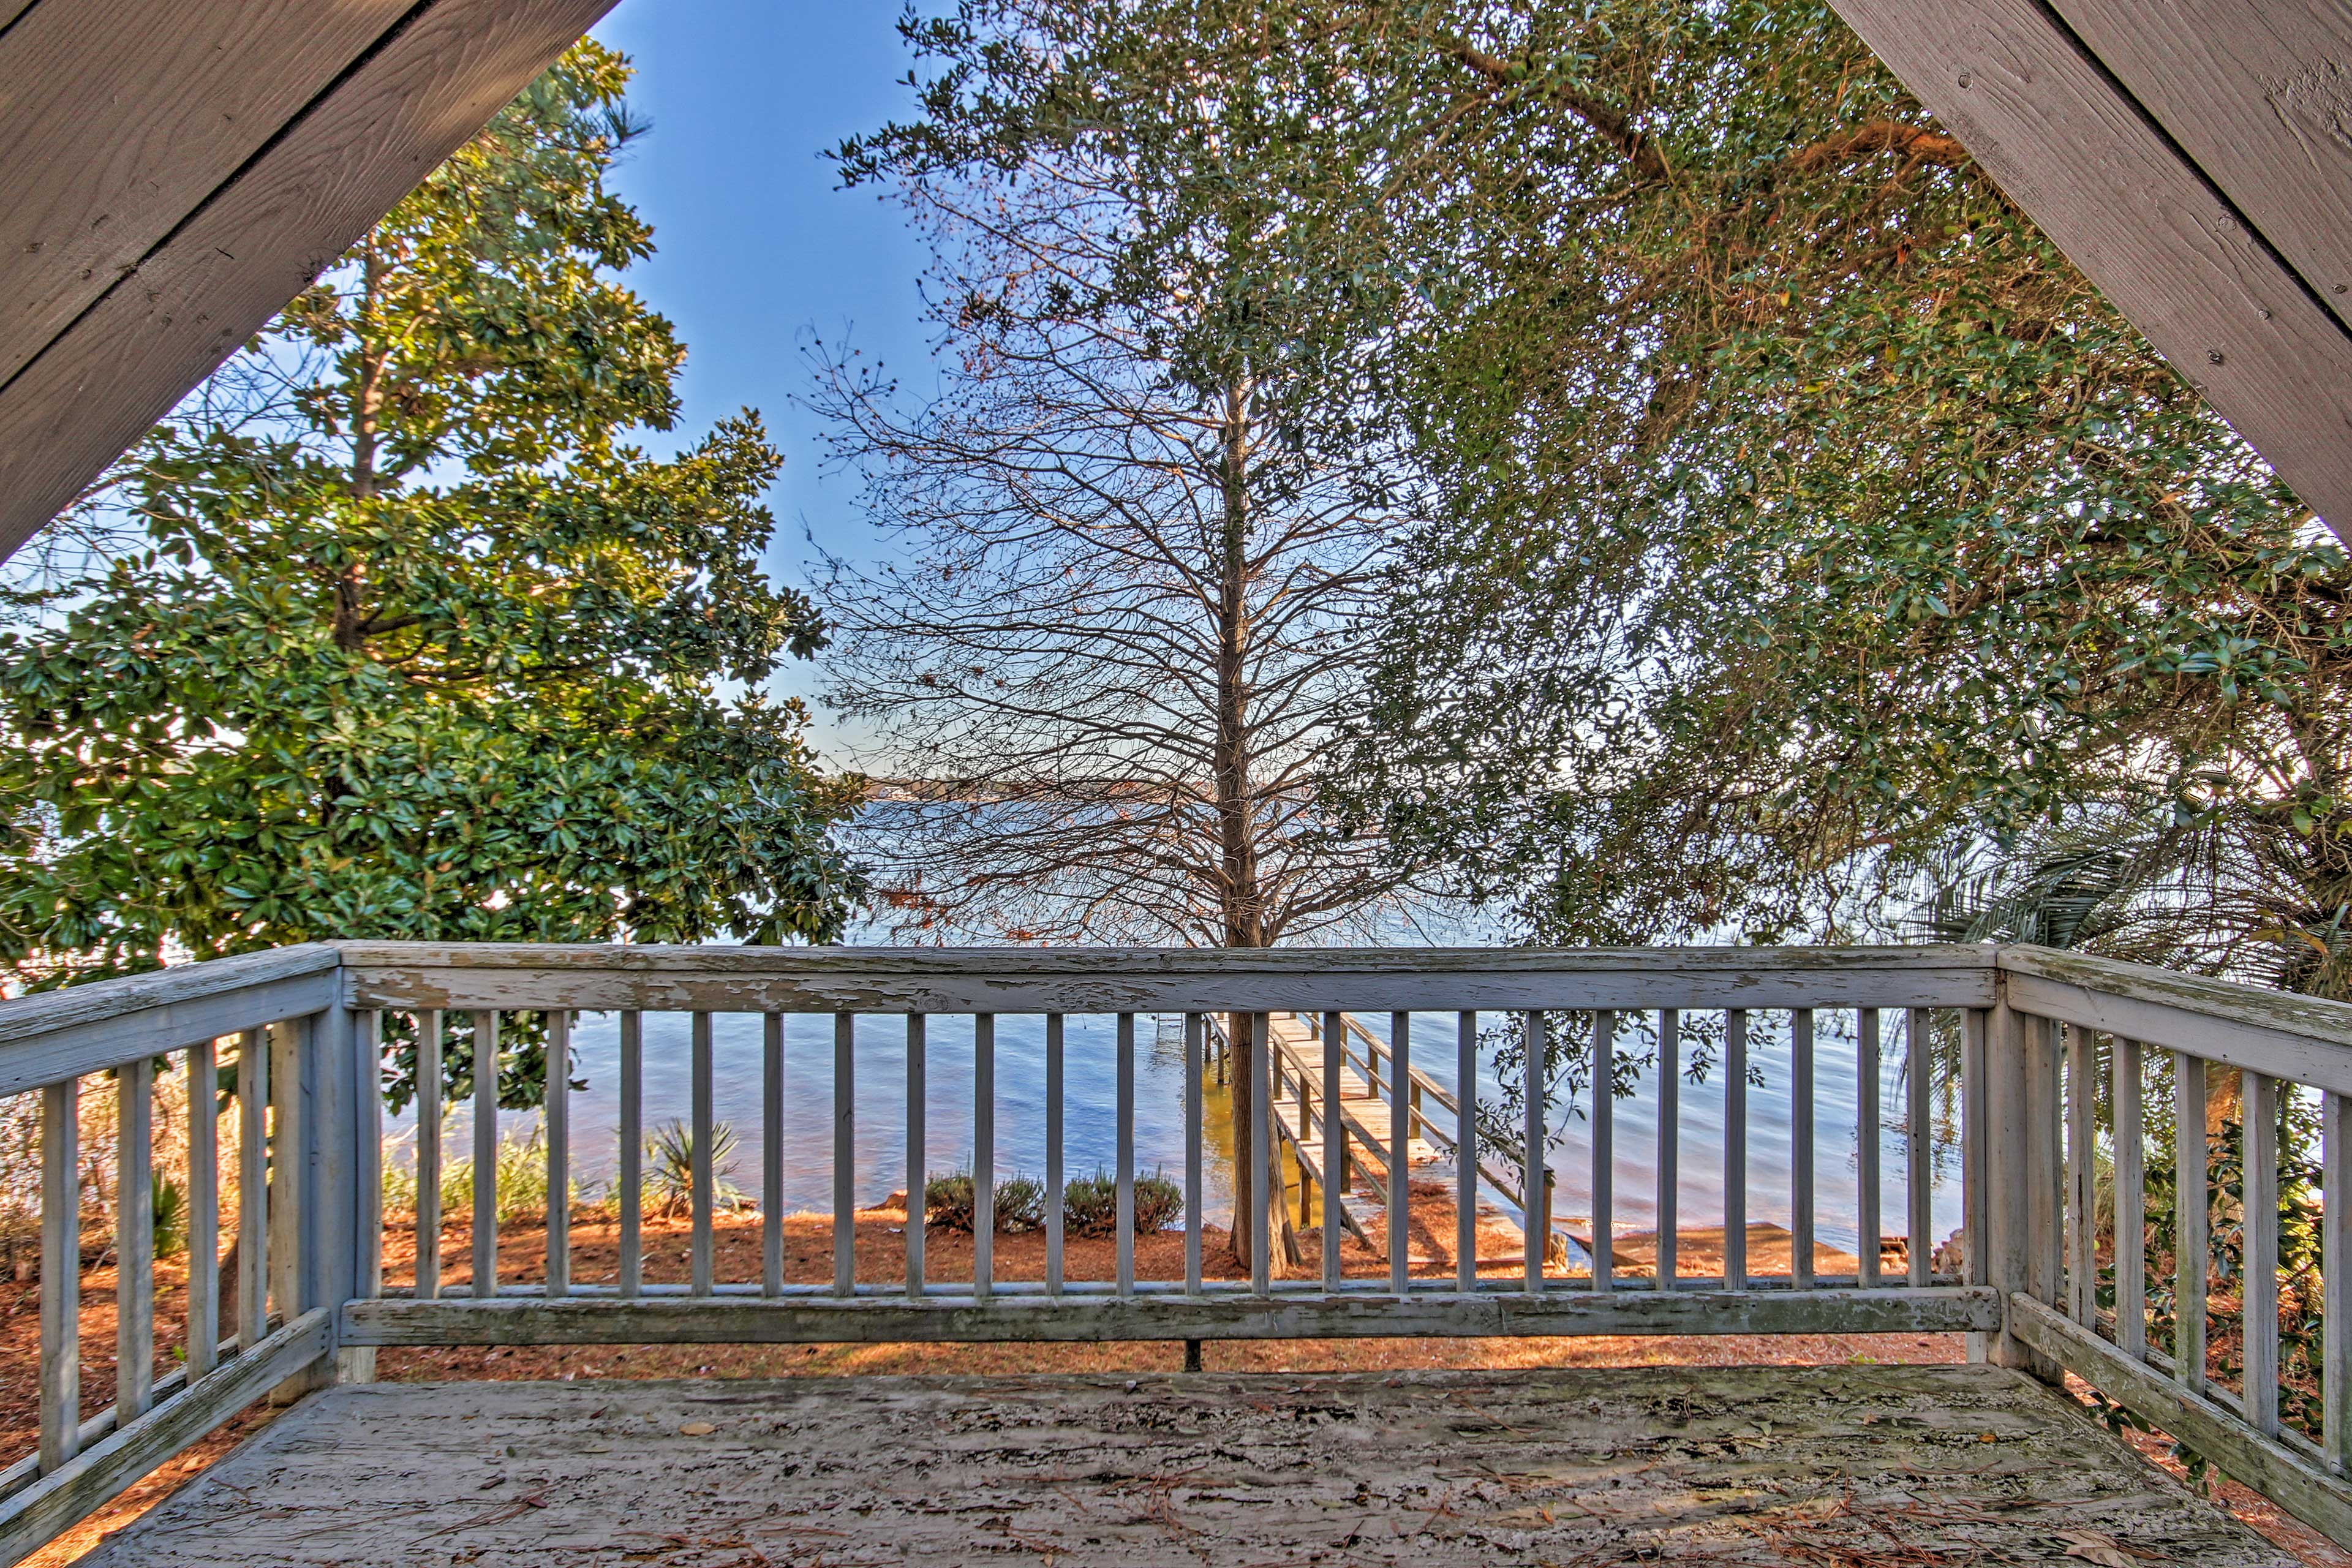 Gaze out into the peaceful lake from the balcony.